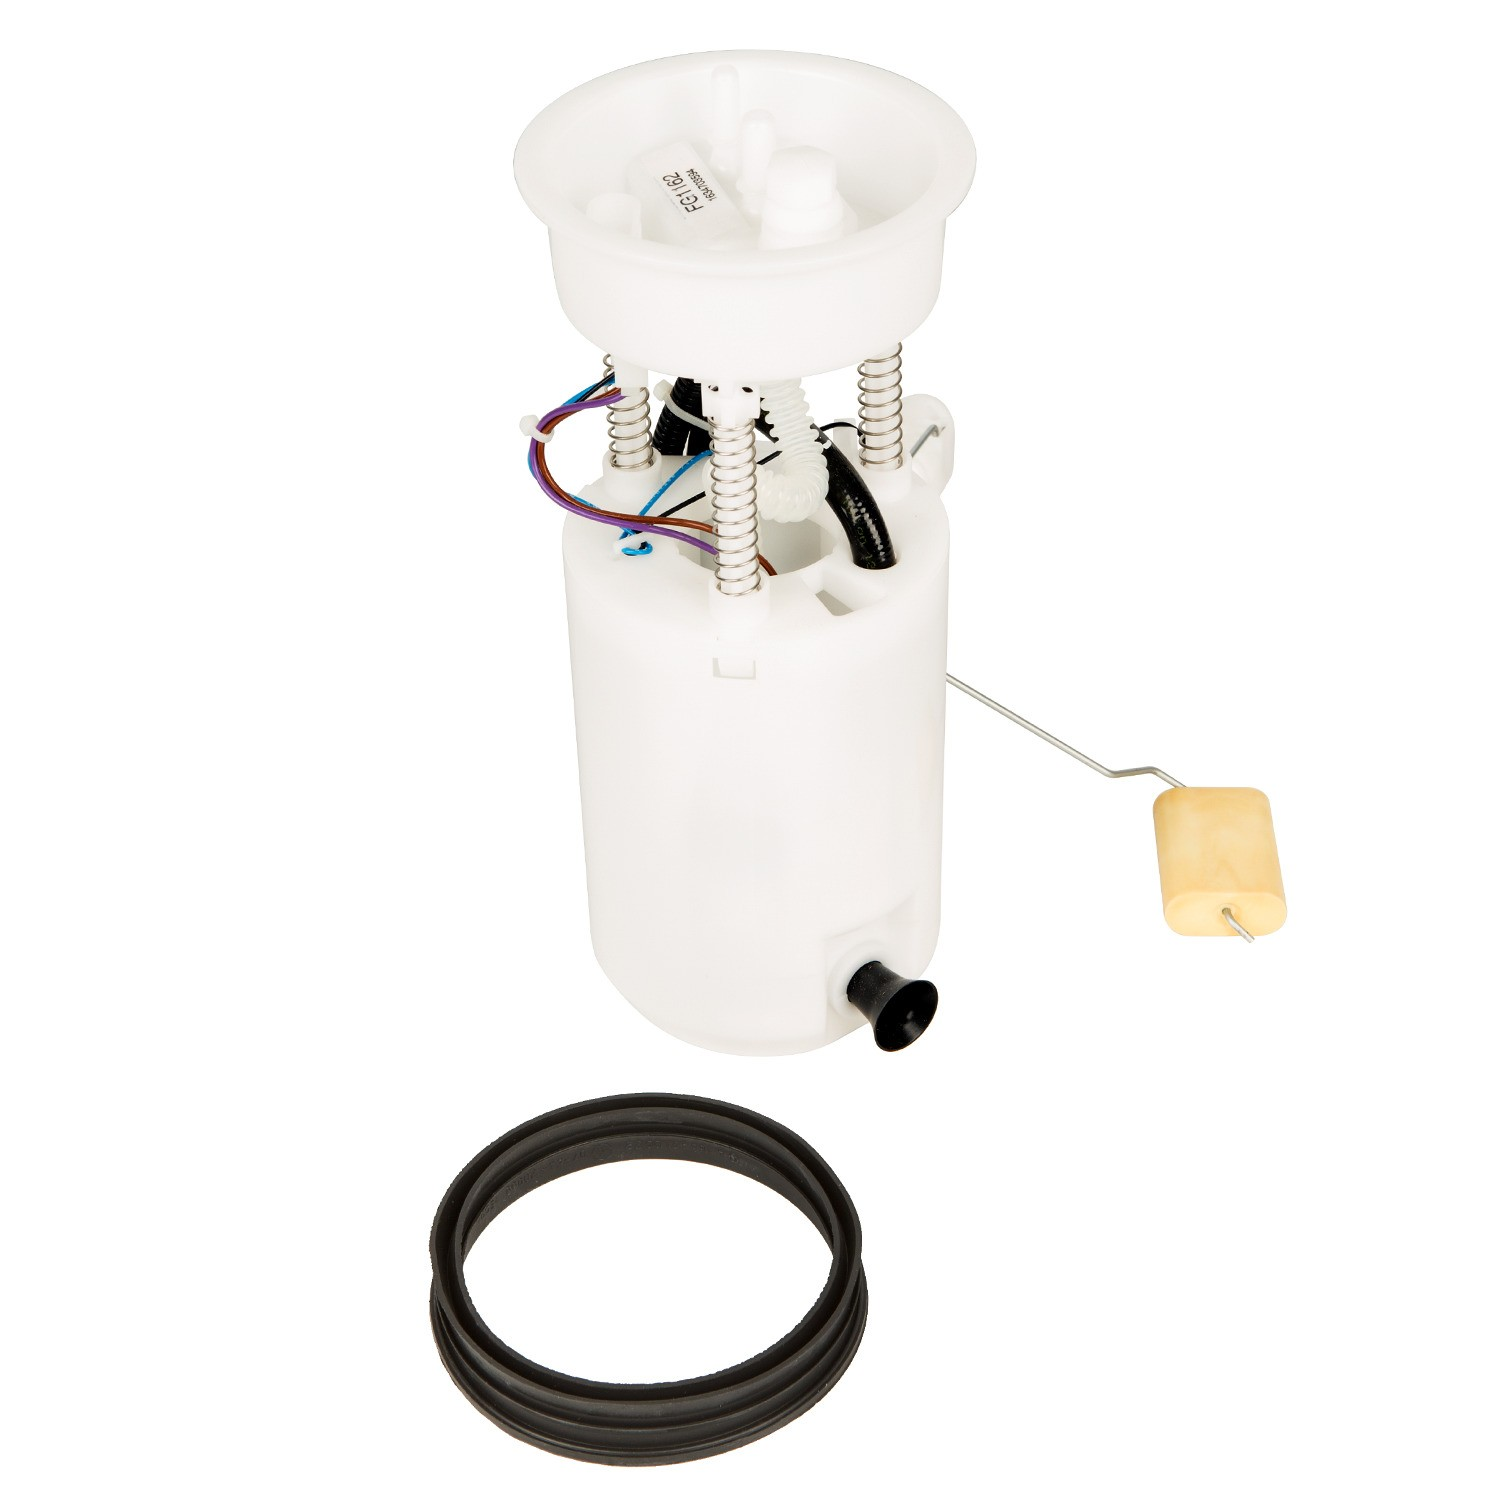 2000 Mercedes Benz Ml320 Fuel Pump Module Assembly 2002 Filter De Fg1162